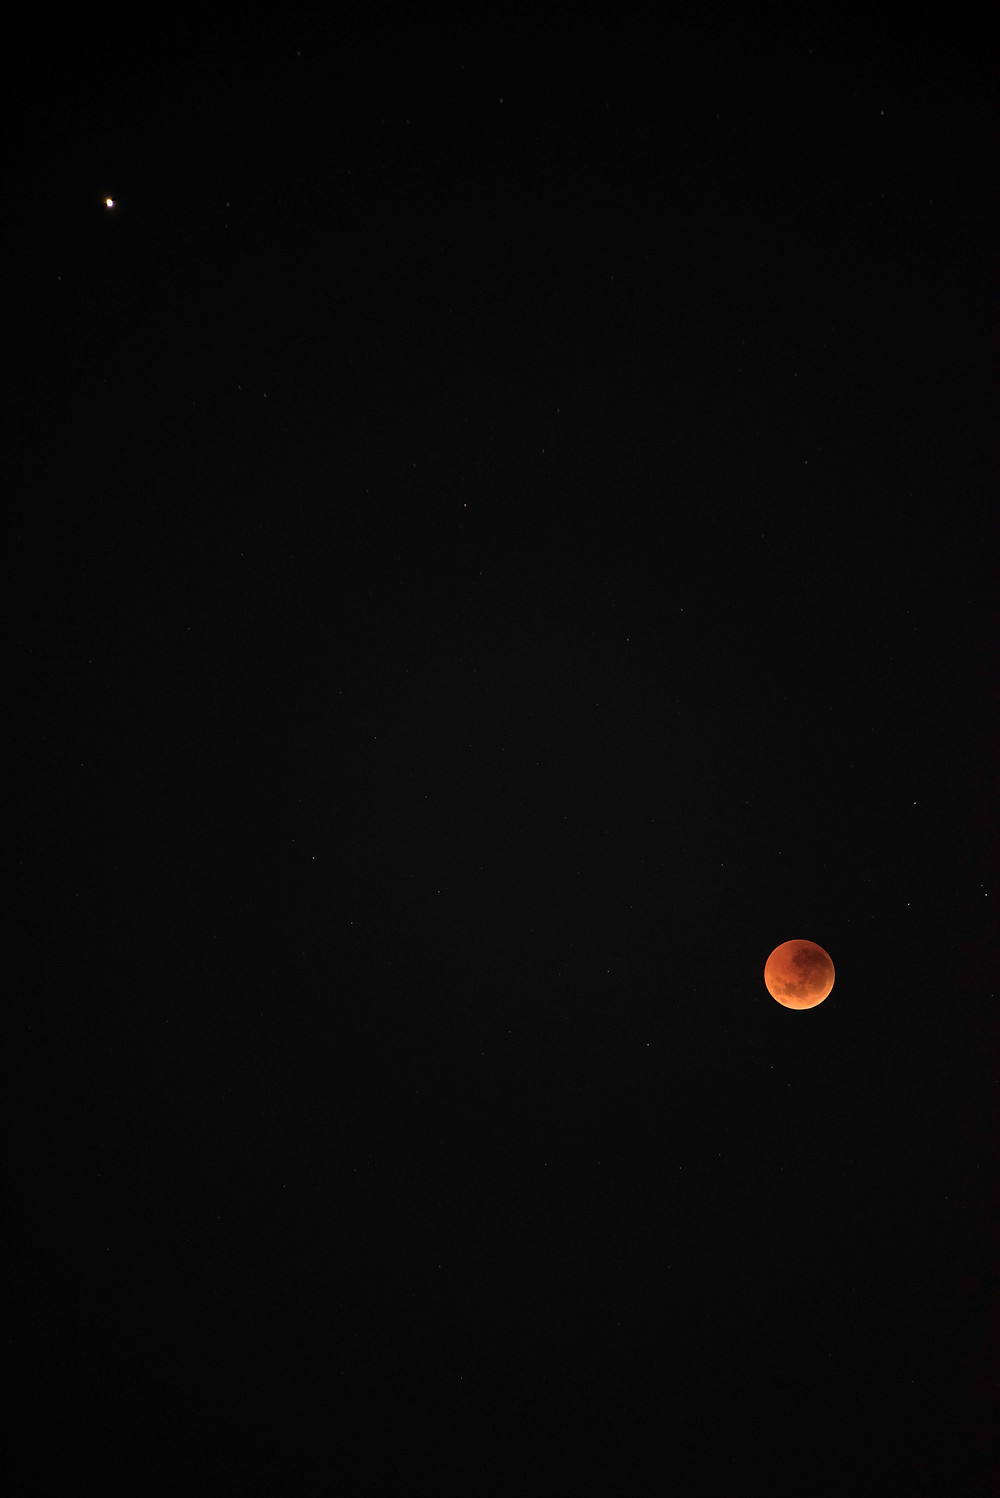 Moon and Mars. f/2.8, 0.6secs, iso 1600, 200mm (uncropped, unedited)